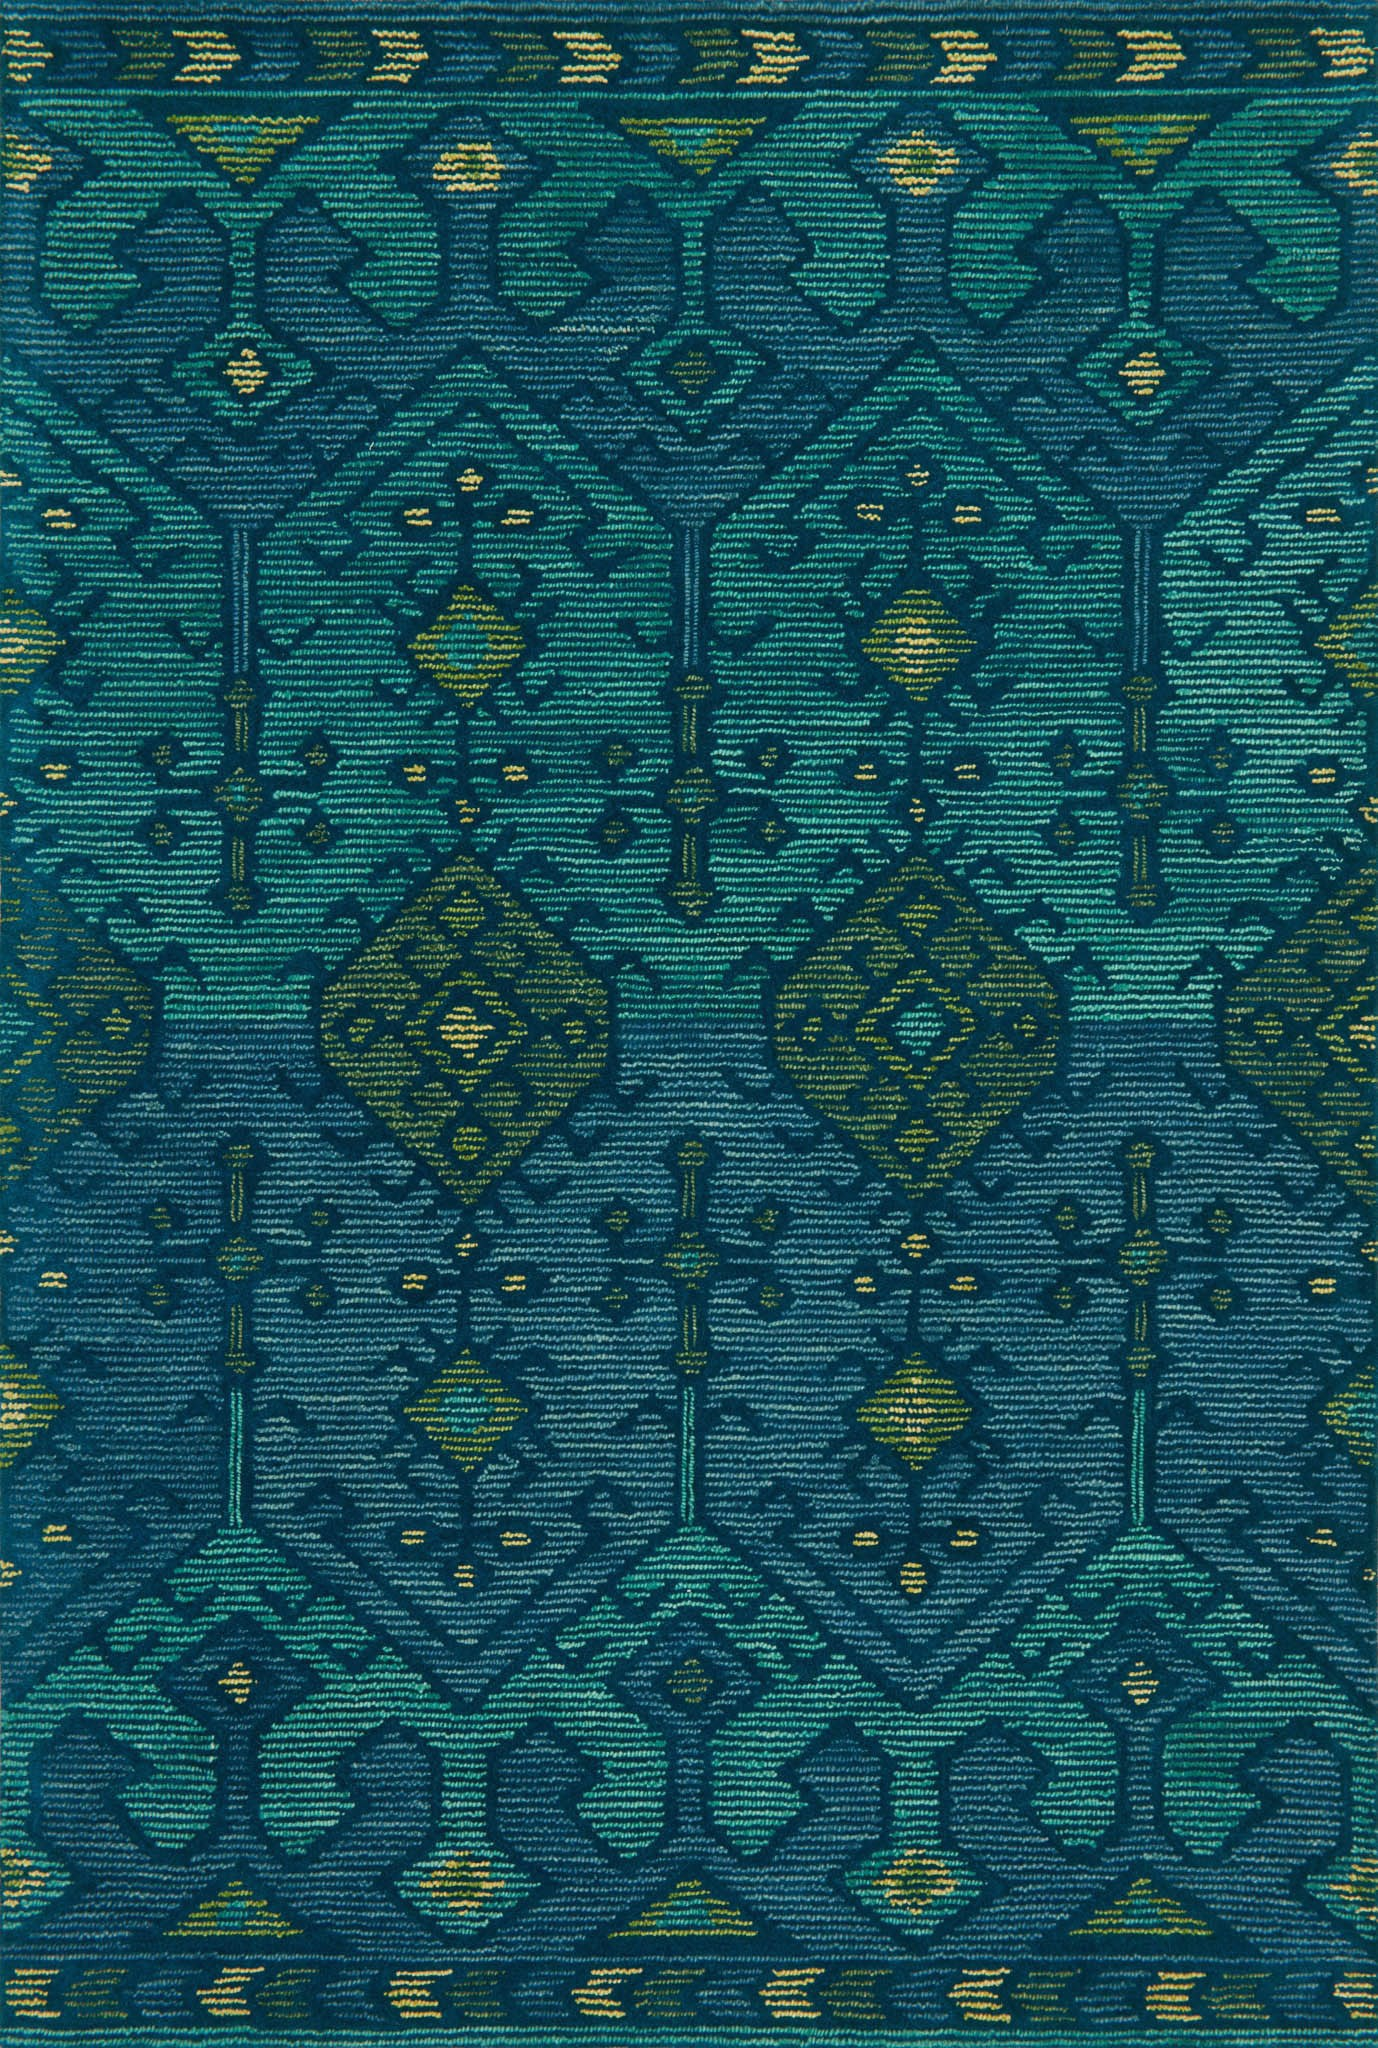 Loloi Gemology GQ-02 Green/Teal Area Rug by Justina Blakeney main image